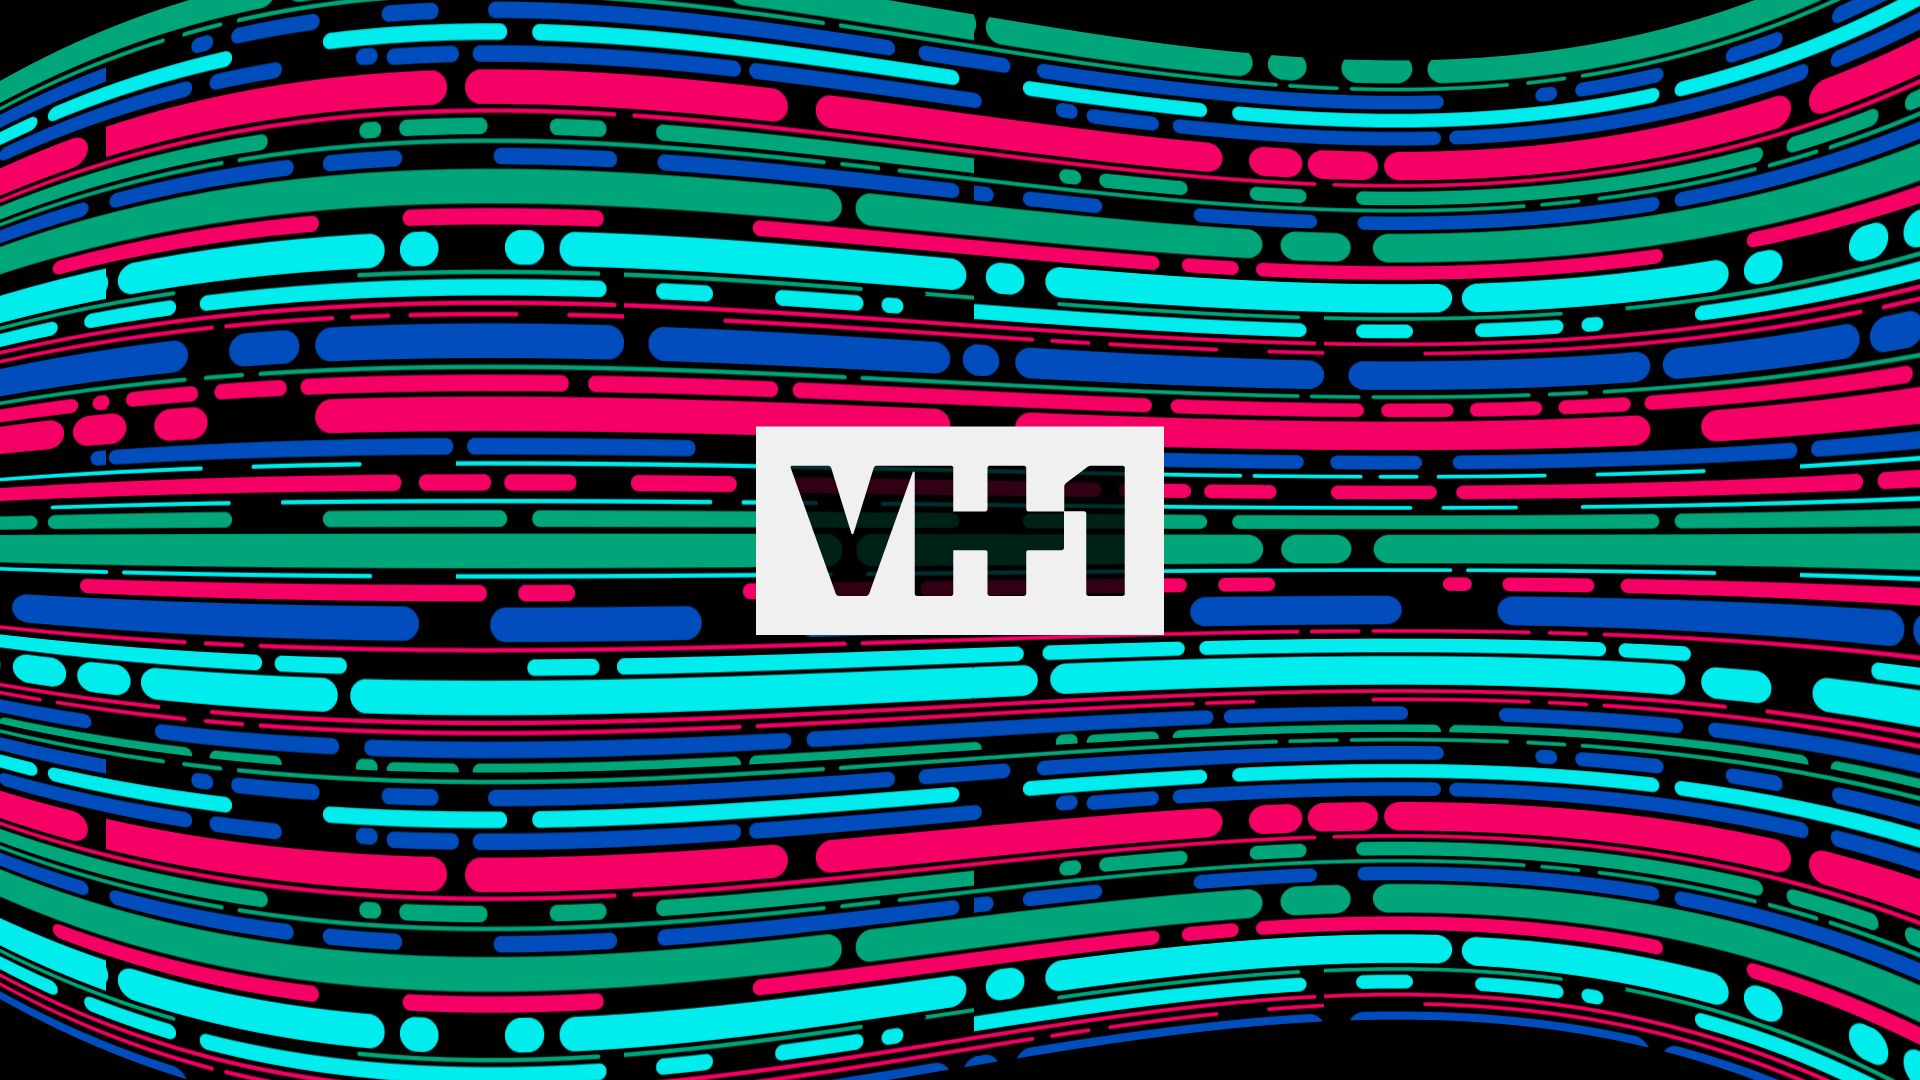 Vh1 Channel Identity Refresh